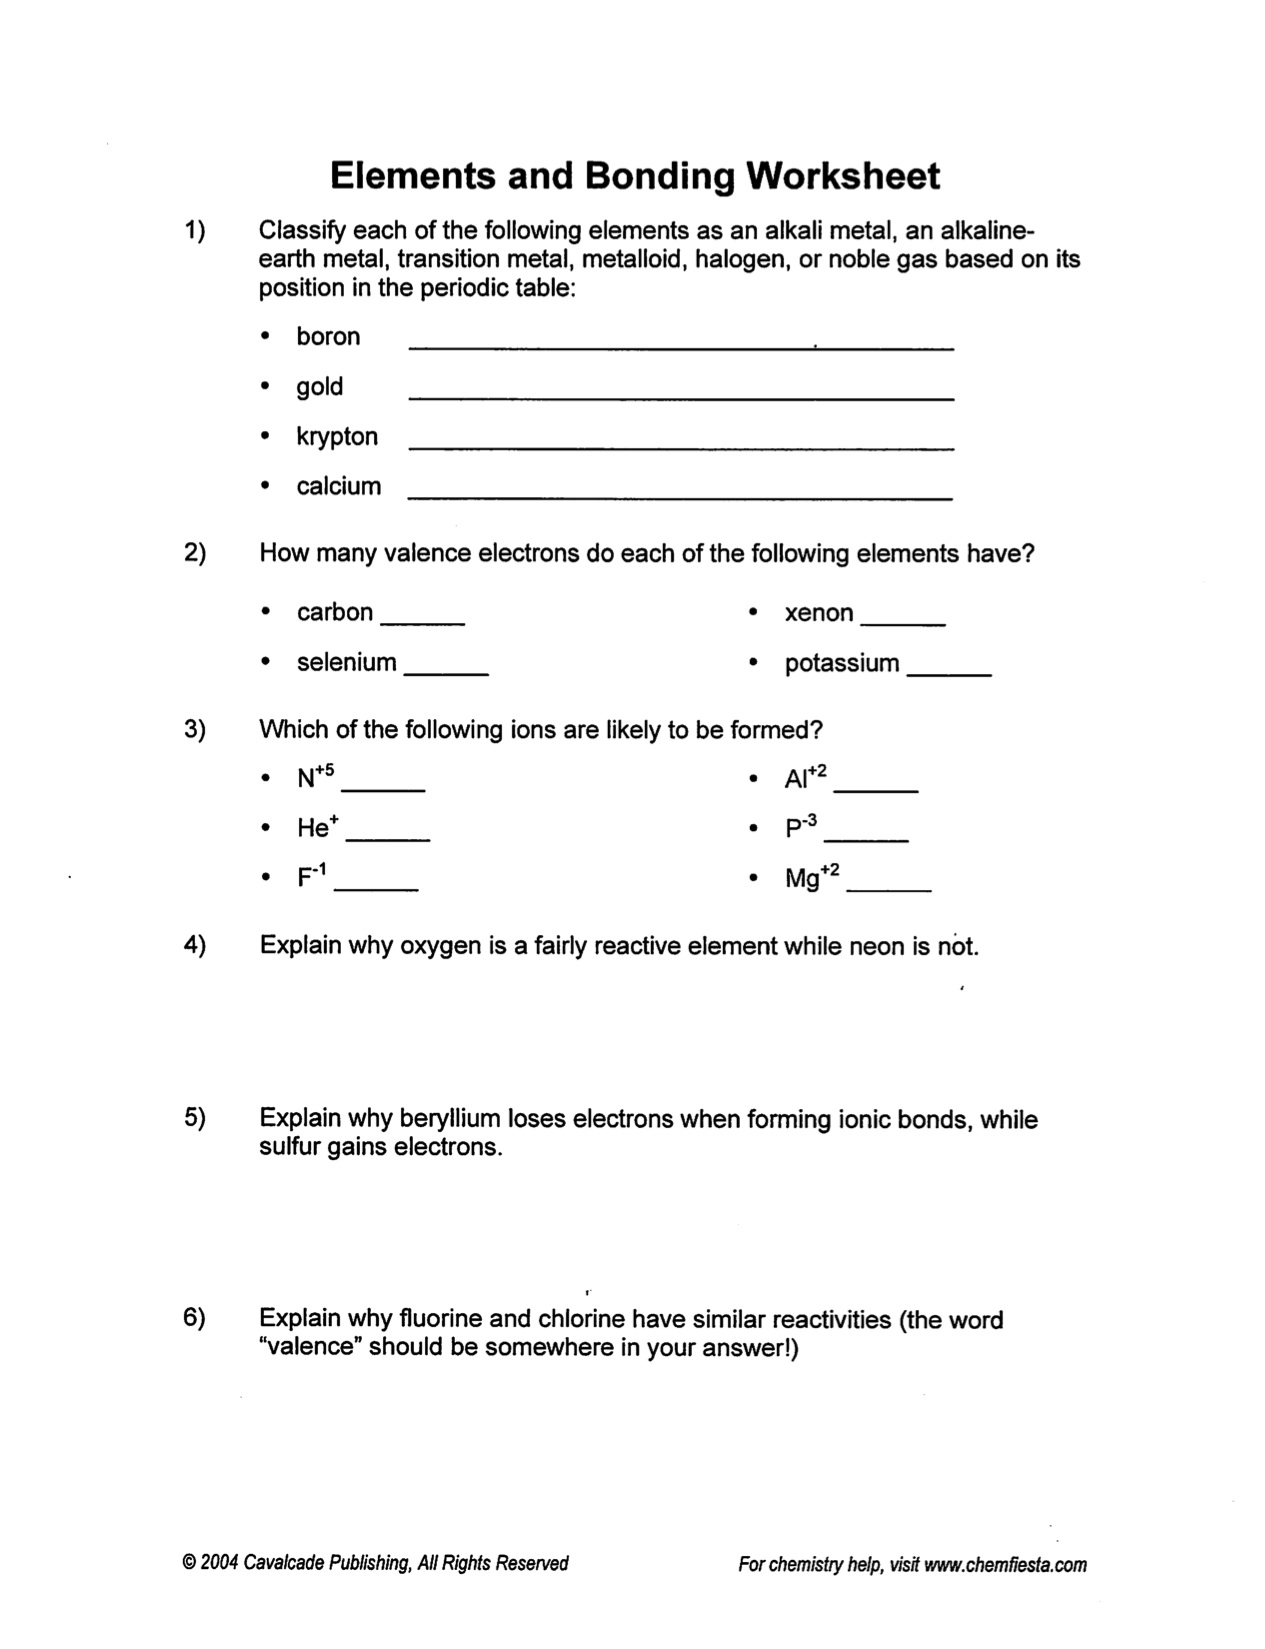 Worksheets Element Worksheet Answers warren county public schools use your own lined paper to write down answers